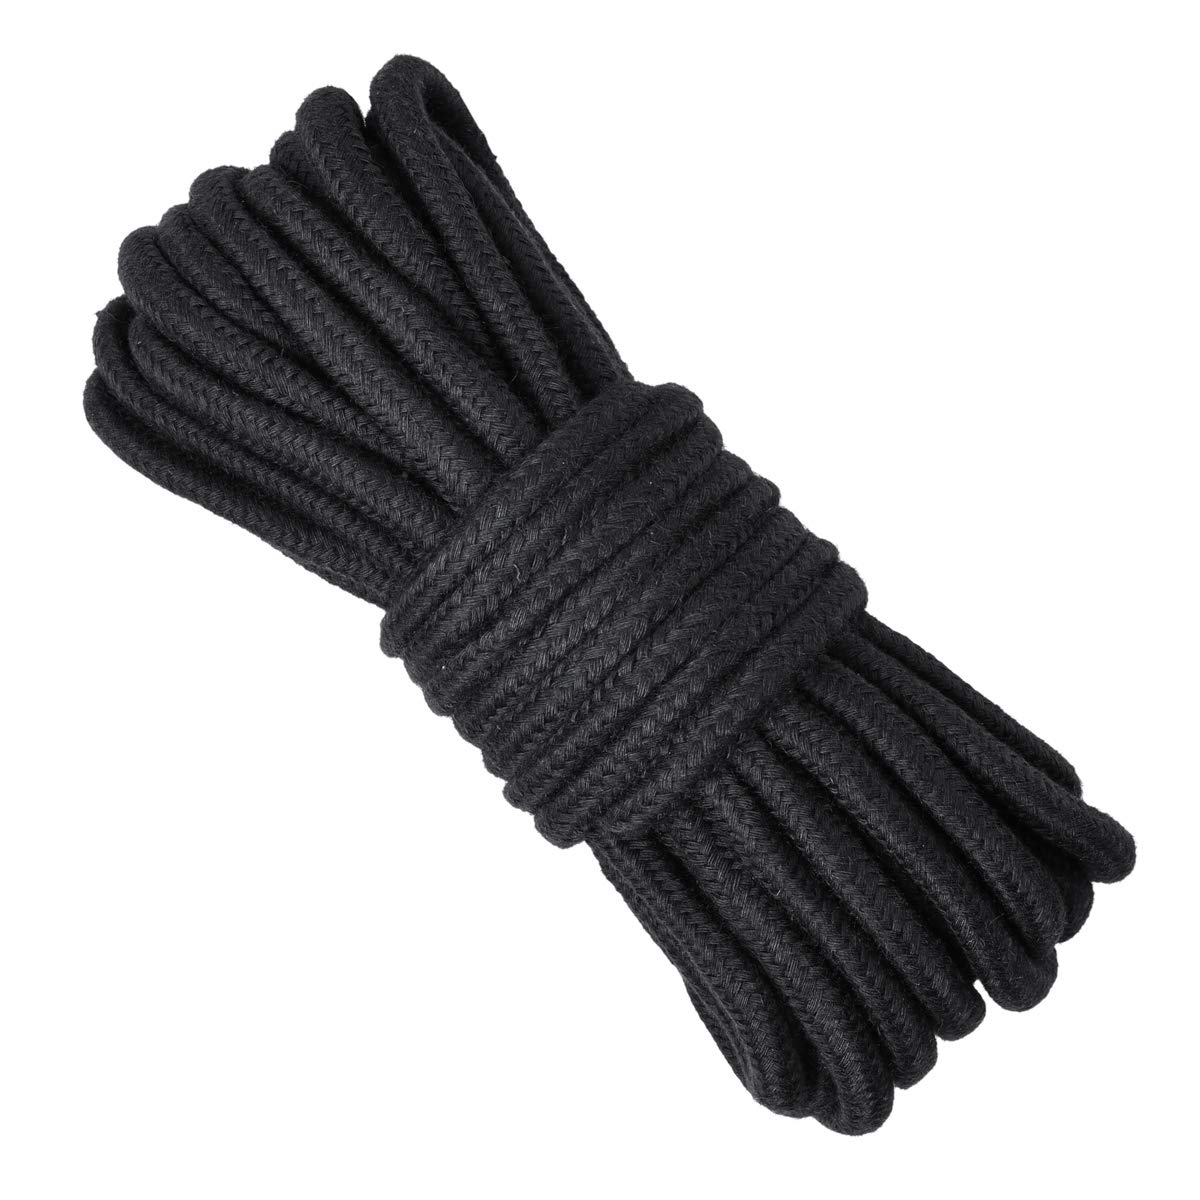 Black Soft Twisted Nylon Rope 32 Feet Durable Long Cotton Rope,8mm Diameter Twine Strong Braided Cord Rope